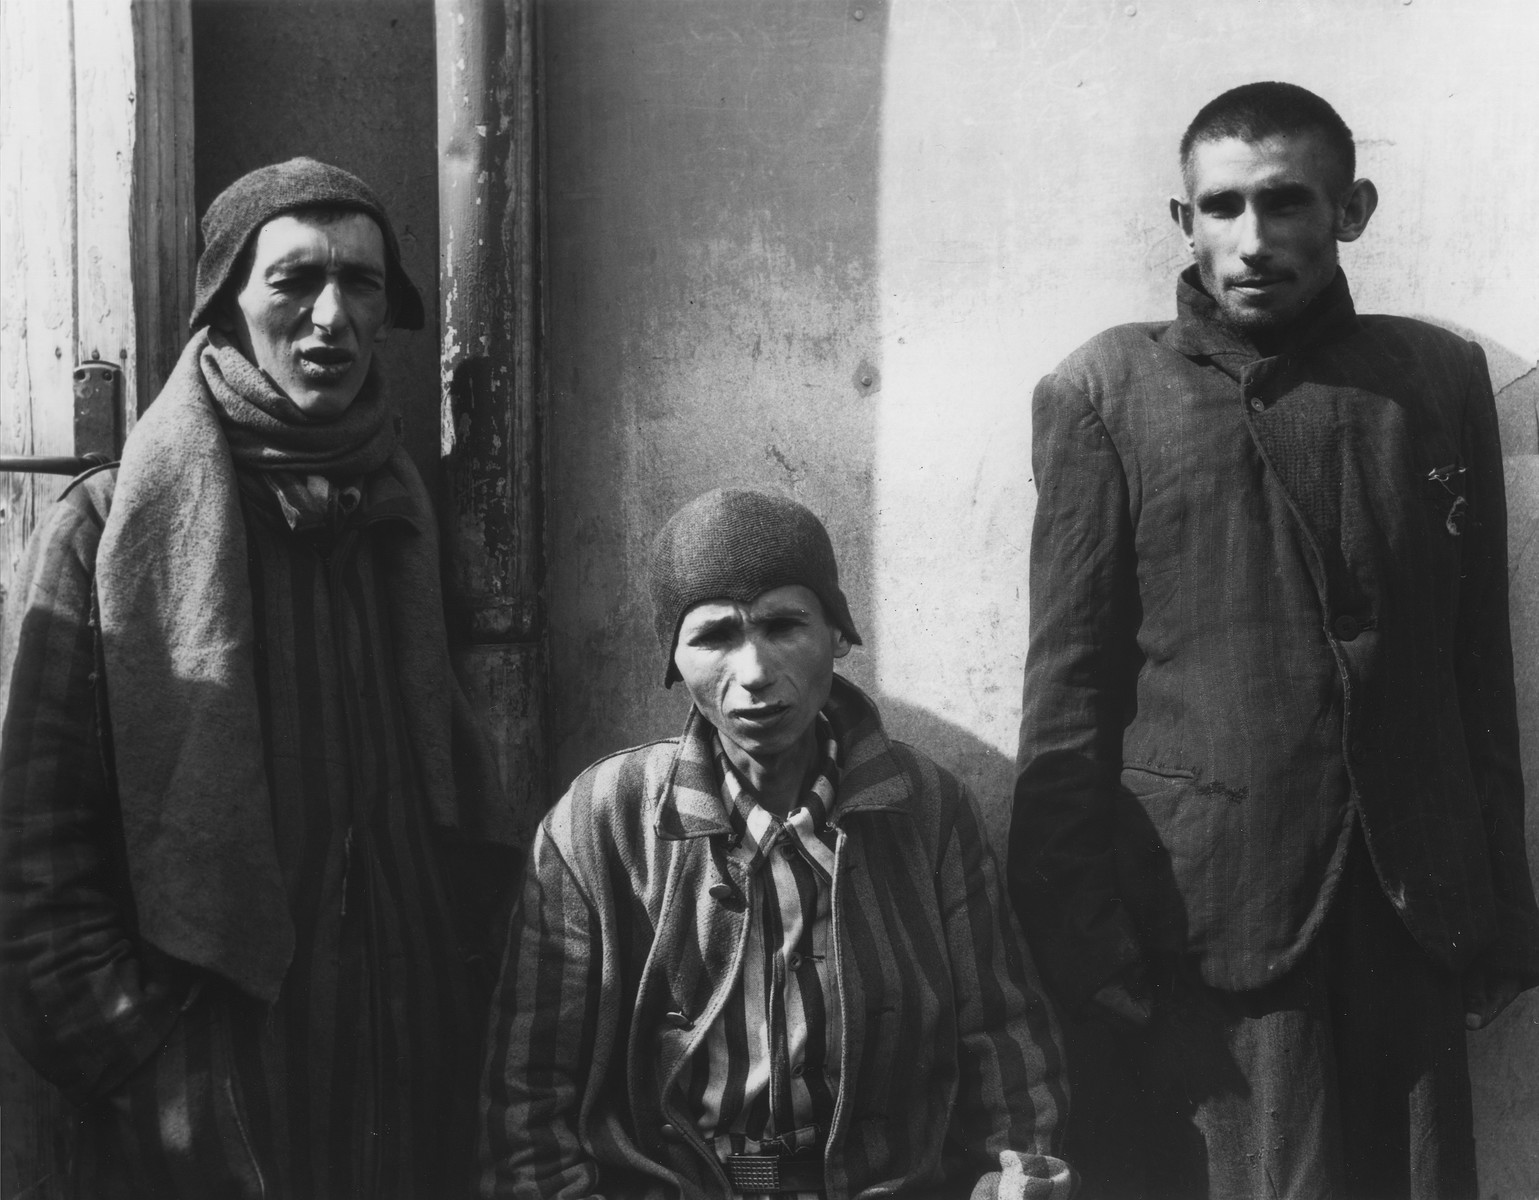 "Three survivors pose outside a barracks in the Dachau concentration camp immediately after the liberation.  The original Signal Corps caption reads, ""DACHAU CONCENTRATION CAMP.  Horrors worse than those found in the German concentration camps of Buchenwald and Belsen were discovered in the stinking hell-hole of Dachau, captured by troops of the 42nd and 45th Infantry Divivions of the Seventh U.S. Army April 30, 1945.  More than 32,000 prisoners were liberated, among those some Englishmen, Canadians and Americans.  The camp was formally surrendered by an SS lieutenant carrying a white flag, accompanied by a Swiss Red Cross official, but SS troops opened fire as American troops approached the main entrance.  The Germans were shot down.  Three prisoners were electrocuted when they tried to burst through the electrified wire barrier to welcome the Americans.  SS guards opened fire on other prisoners who went wild with joy and rushed to meet the liberating troops.  Prisoners with access to records said 9,000 people died of hunger, disease or shooting within the past three months at Dachau.  Four thousand more perished during cold Winter months.  When Americans entered the camp, they found 50 open railway cars standing on a siding, apparently full of oiled, dirty clothing but actually found to contain hundreds of corpses piled on top of each other.  They also found a row of kennels where fierce doges were kept to set after escaping men.  They discovered gas extermination chambers, incinerators full of naked bodies, bodies marked for dissection and the bodies of several small children.   BIPPA                                                        EA 64858  THIS PHOTO SHOWS:  Gaunt, starved and half-dead, these three prisoners, two in striped prison garb, are evidence of the horrors of Dachau.  U.S. Signal Corps Photo ETO-HQ-45-35581. SERVICED BY LONDON OWI TO LIST B CERTIFIED AS PASSED BY SHAEF CENSOR"""